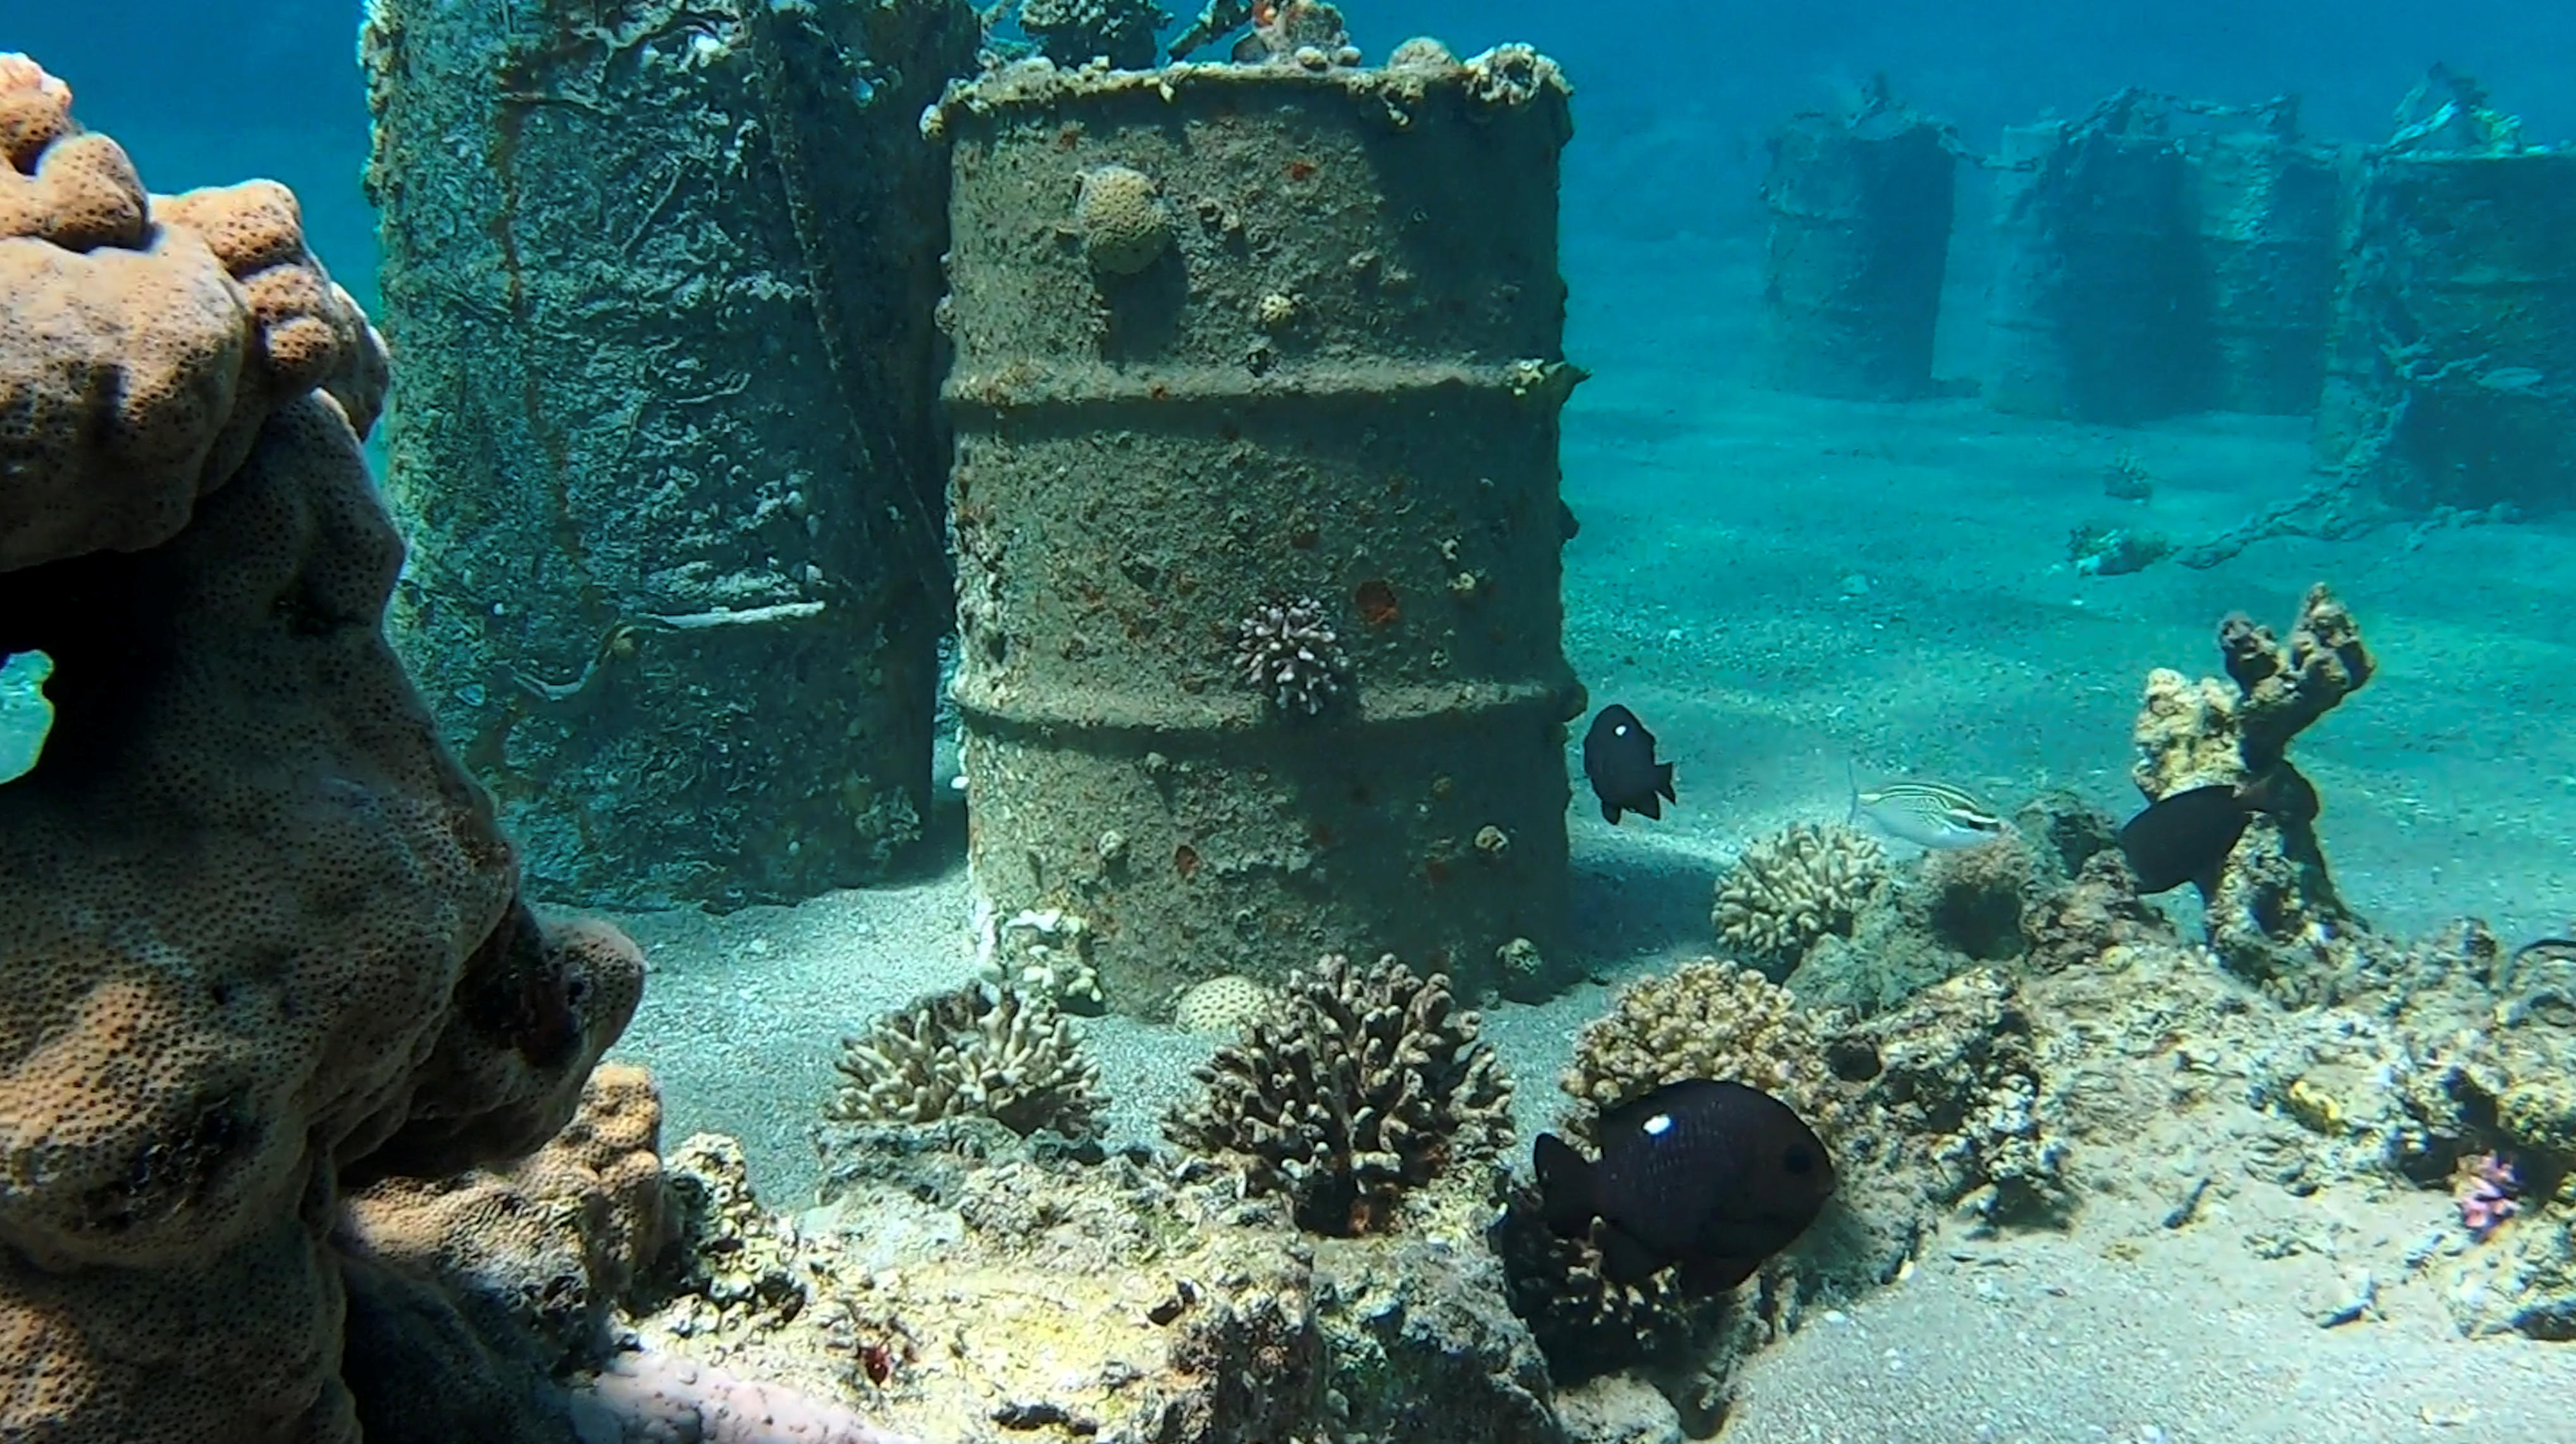 The coral reef thrived among oil company debris